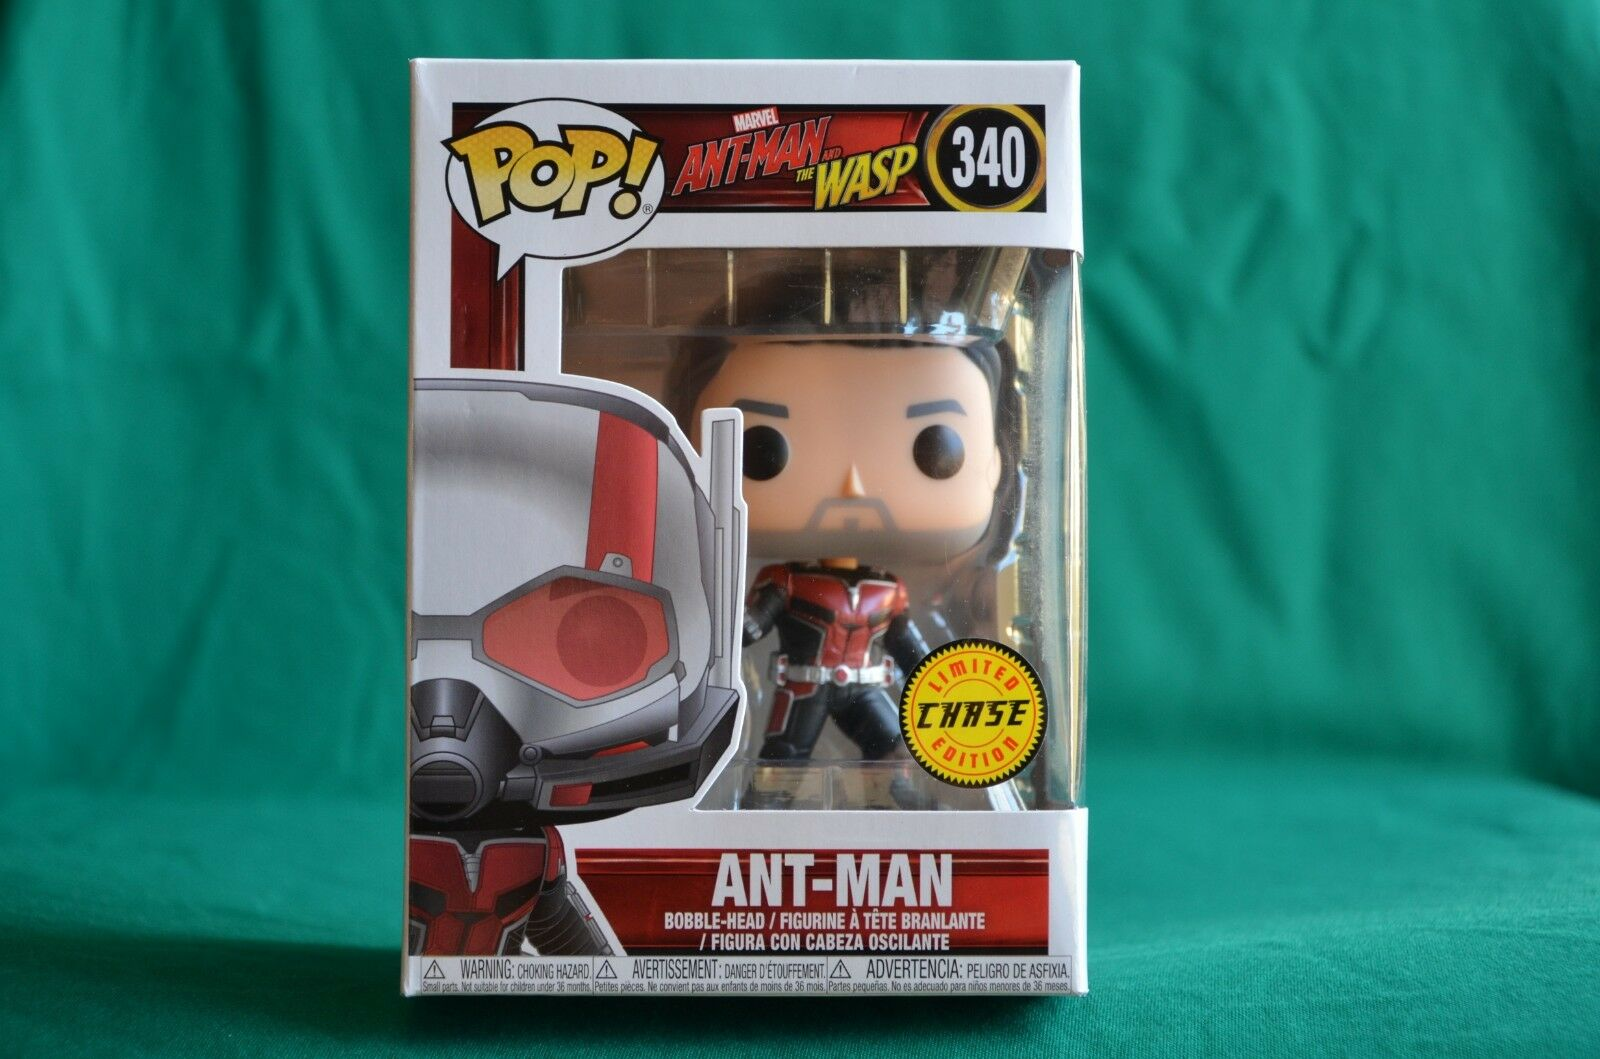 FUNKO POP - MARVEL - ANT-MAN - 340 - LIMITED EDITION CHASE - NUOVO